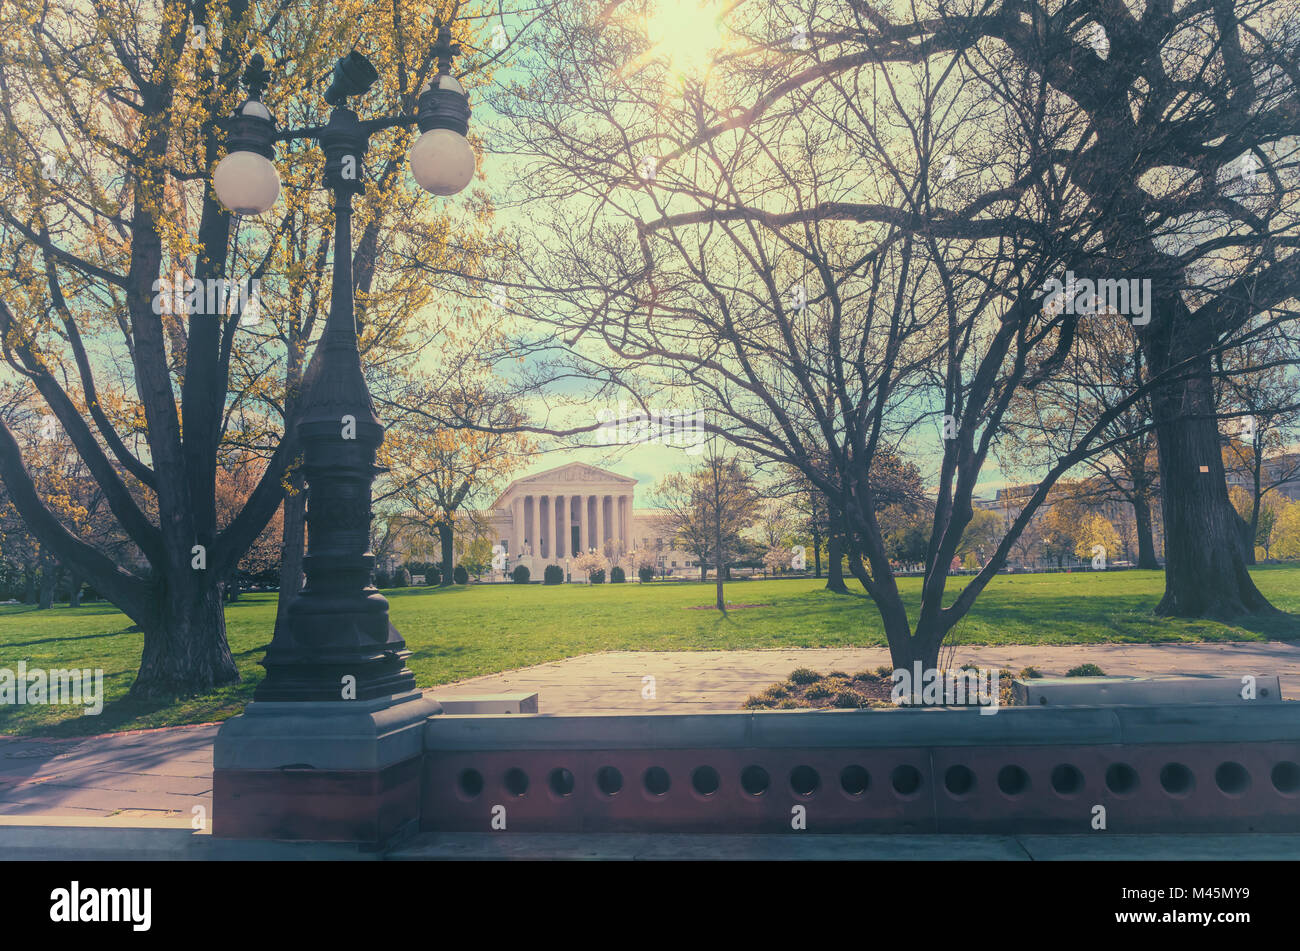 The United States Supreme Court building seen through the city park, Washington, District of Columbia. - Stock Image